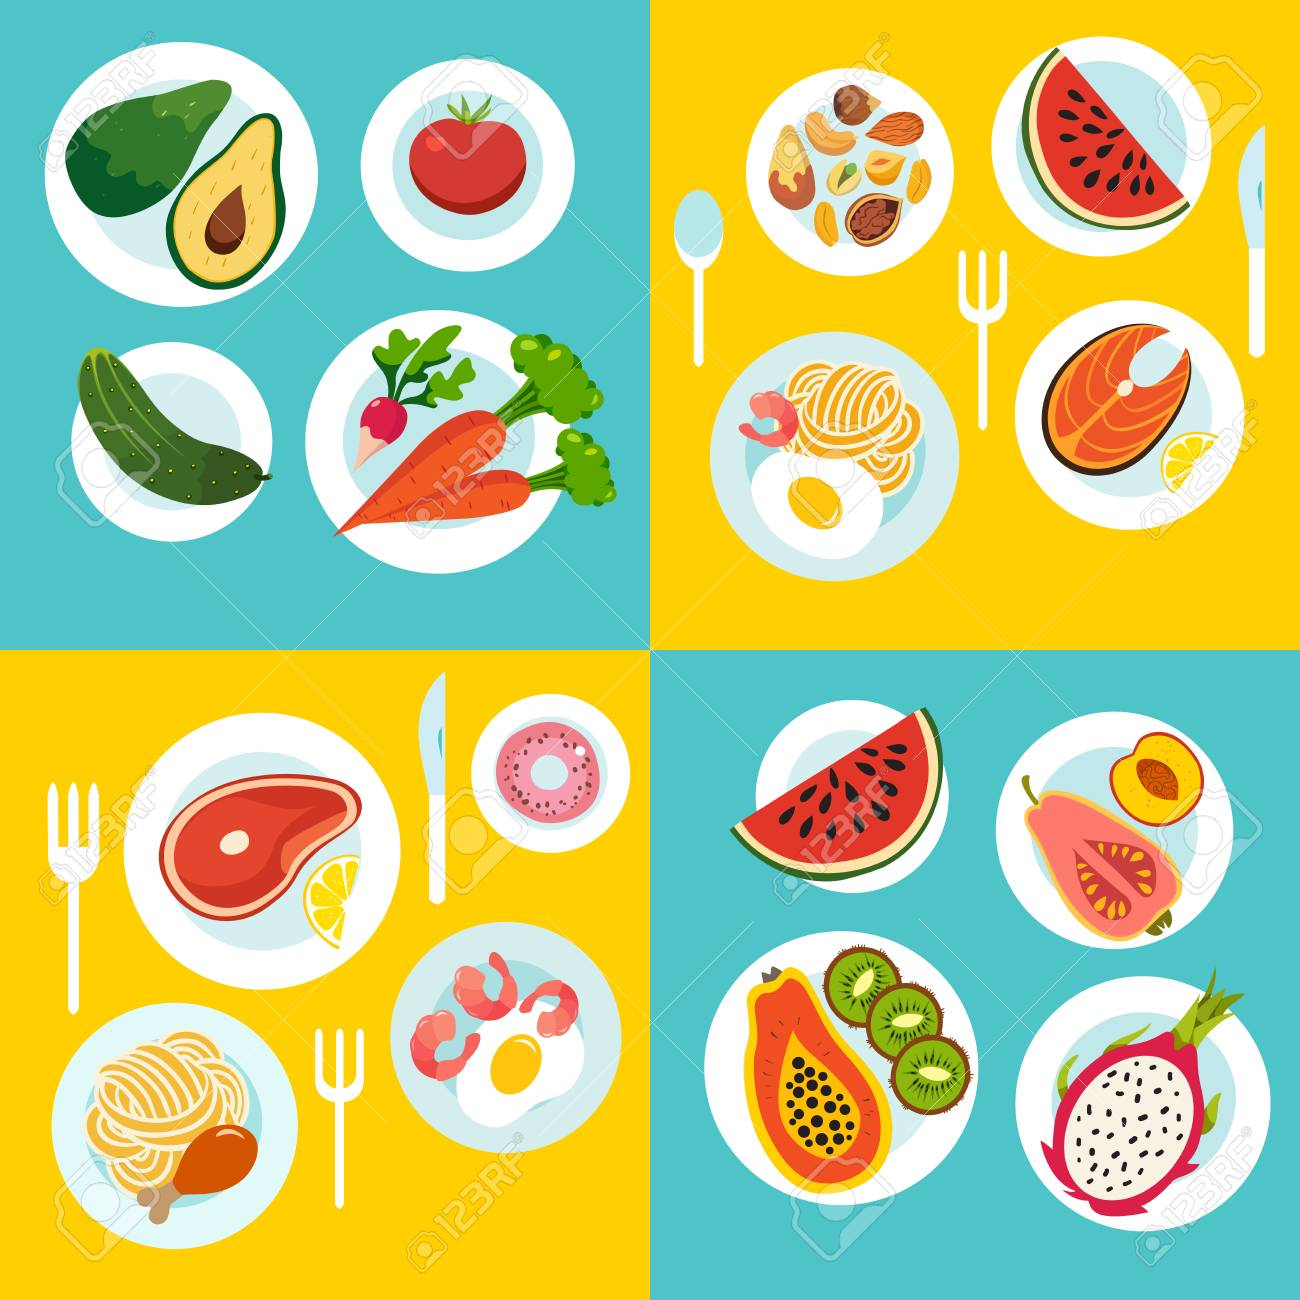 Healthy Food Set Vegetables Fruit Meal On The Table Cartoon Royalty Free Cliparts Vectors And Stock Illustration Image 65980258